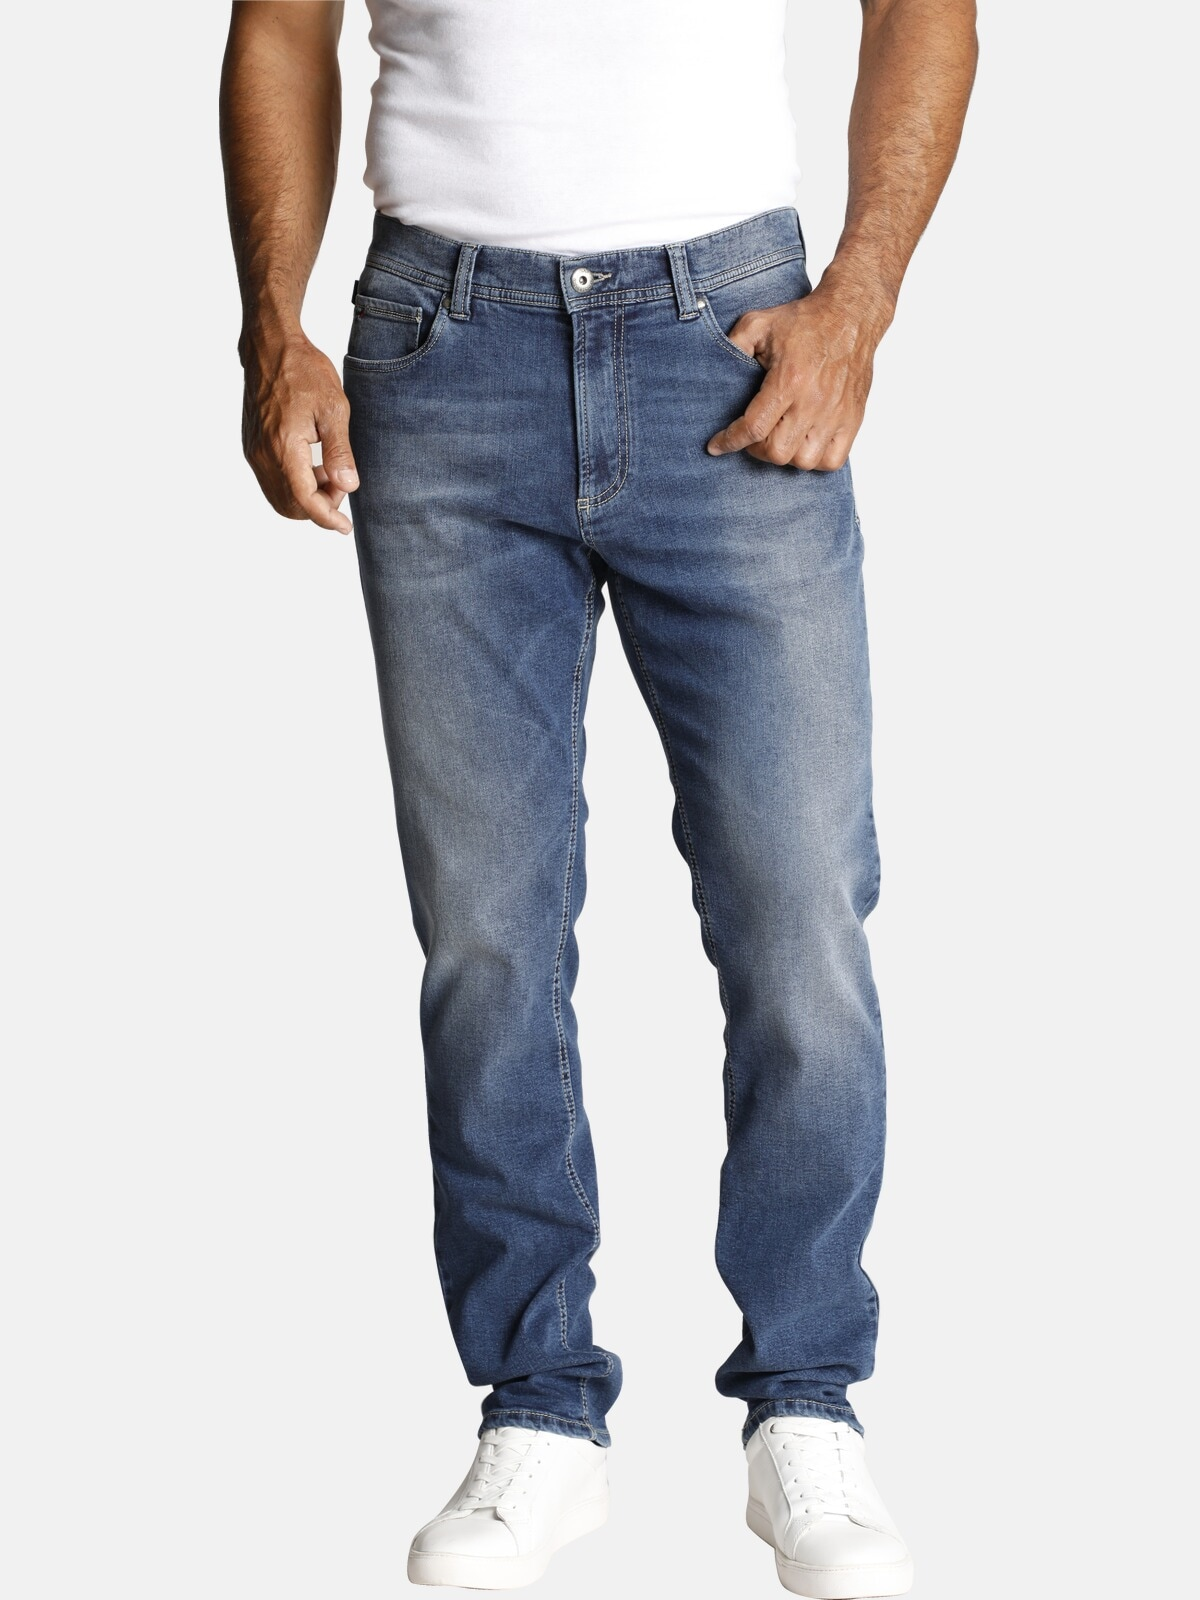 Jan Vanderstorm 5-Pocket-Jeans »WALLNER« von Jan Vanderstorm